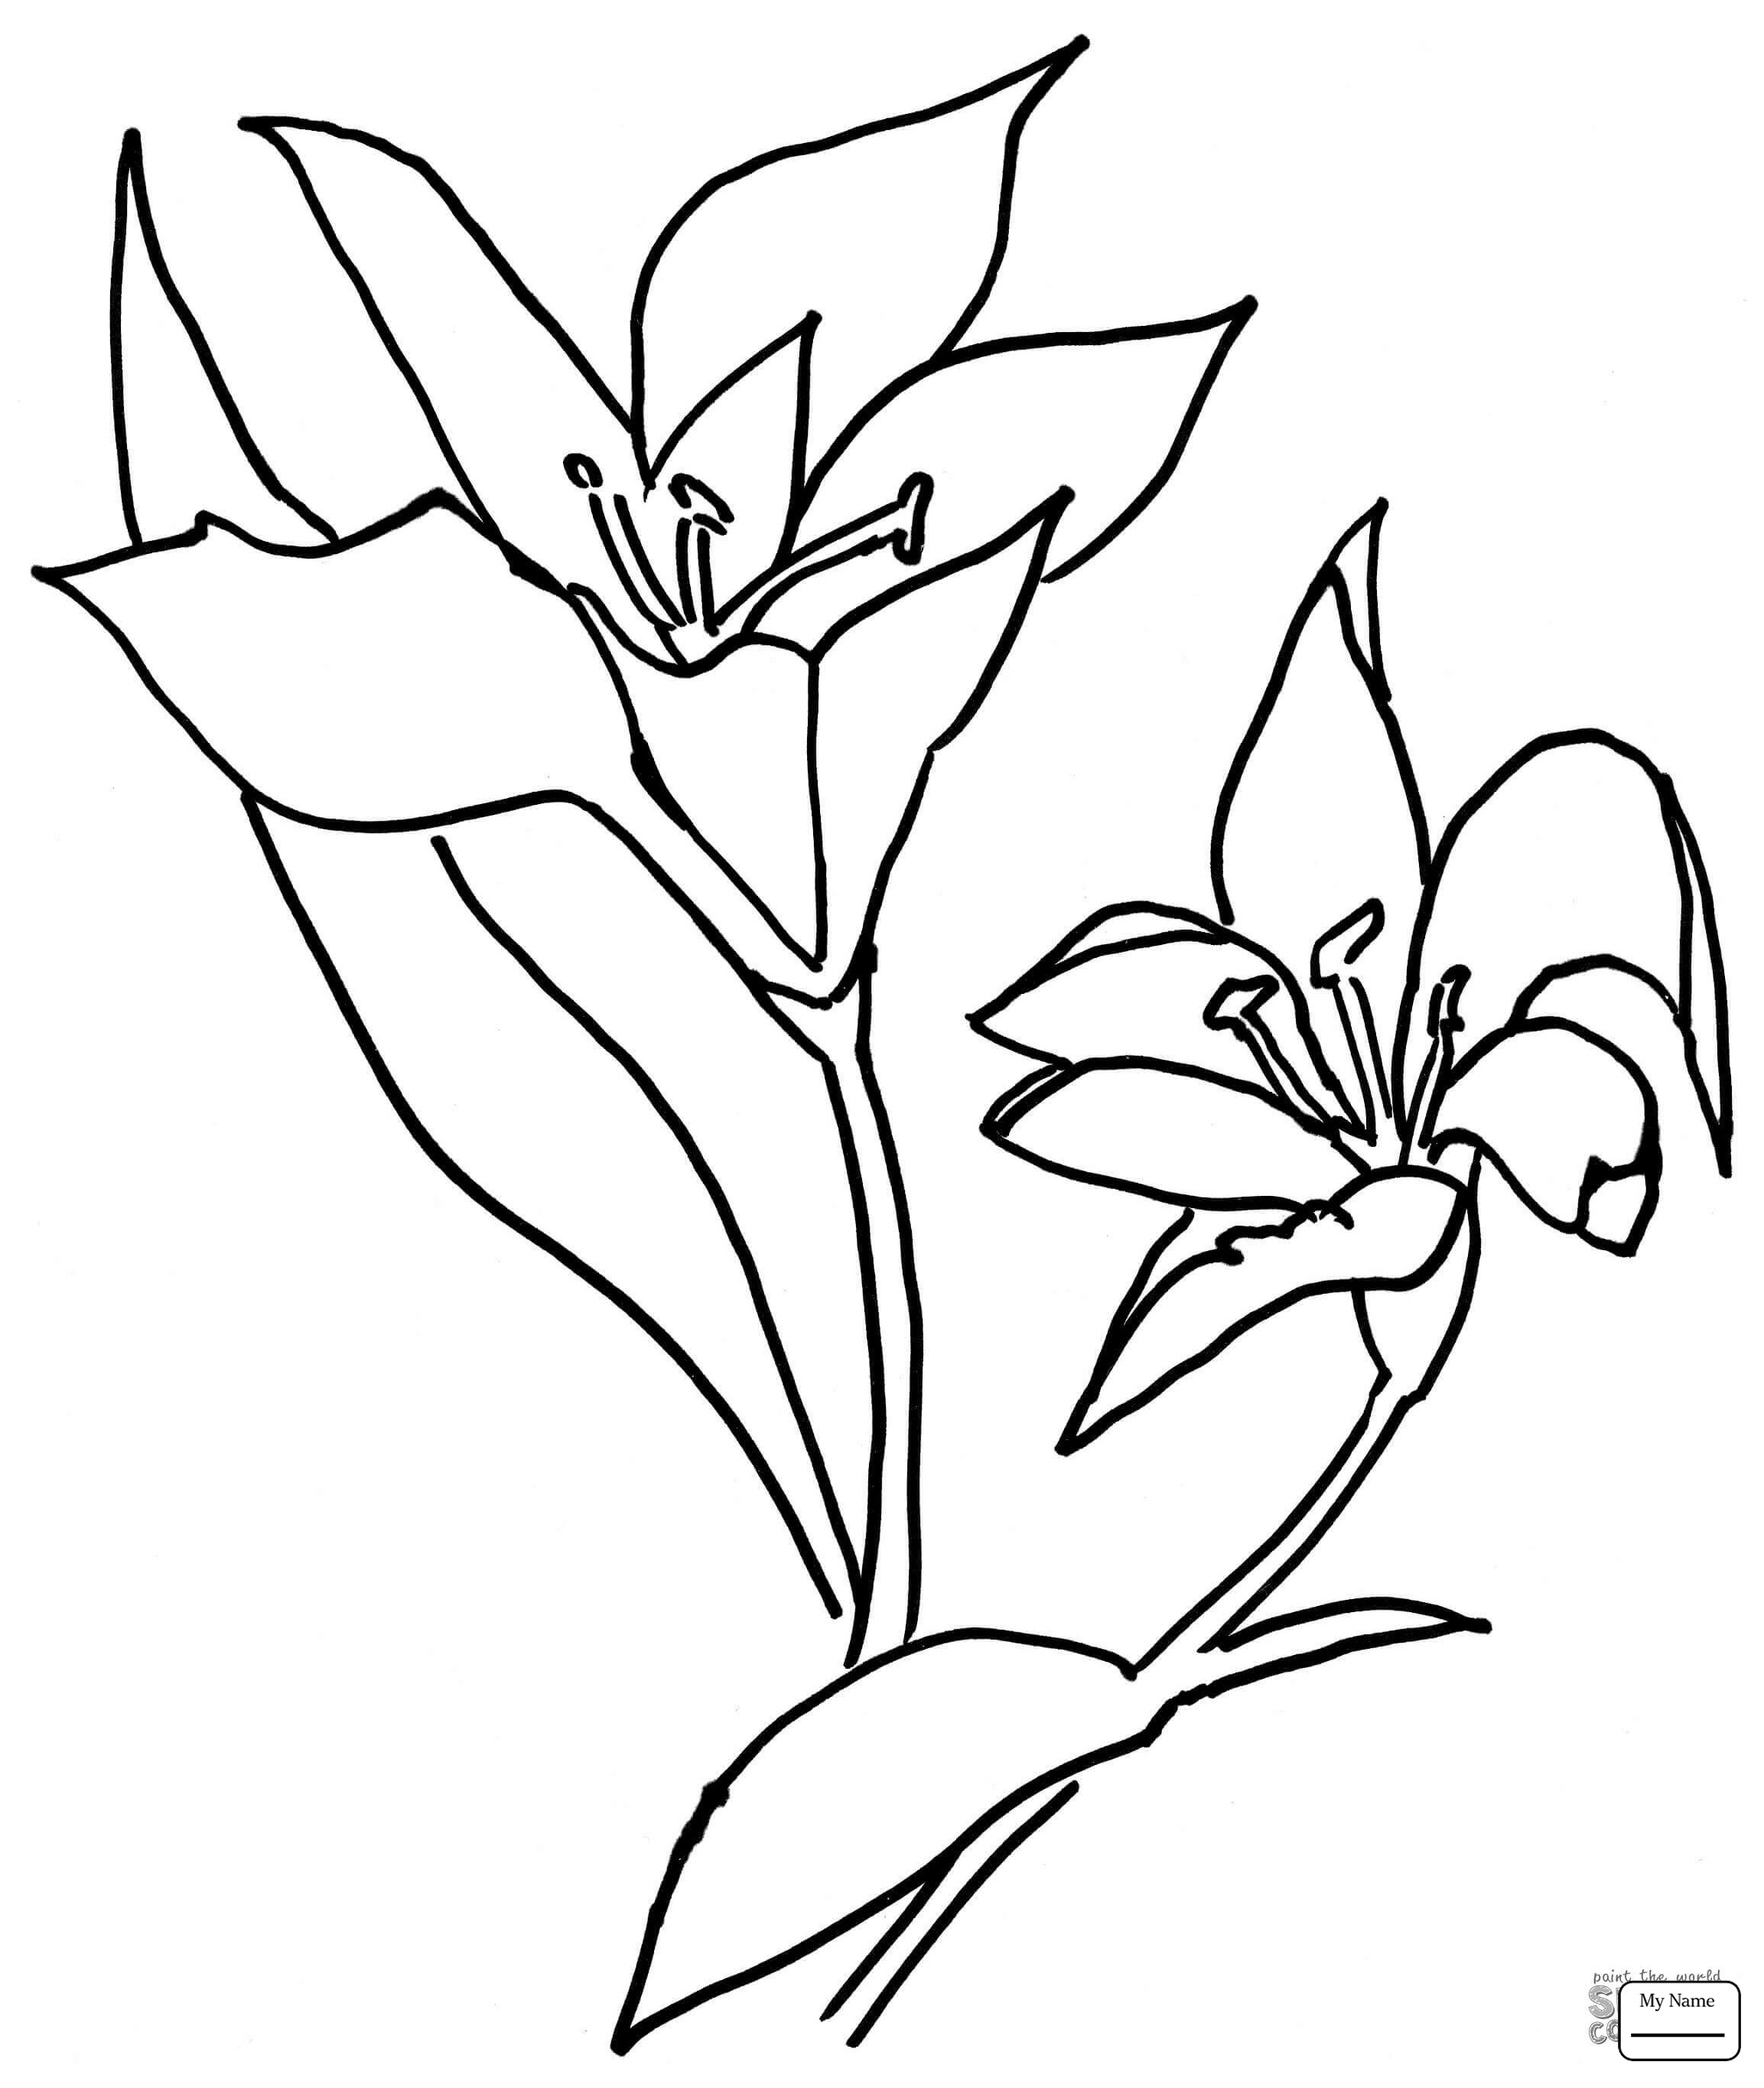 2306x2729 Lilium Flower Coloring Pages For Kids Awesome Coloring Pages